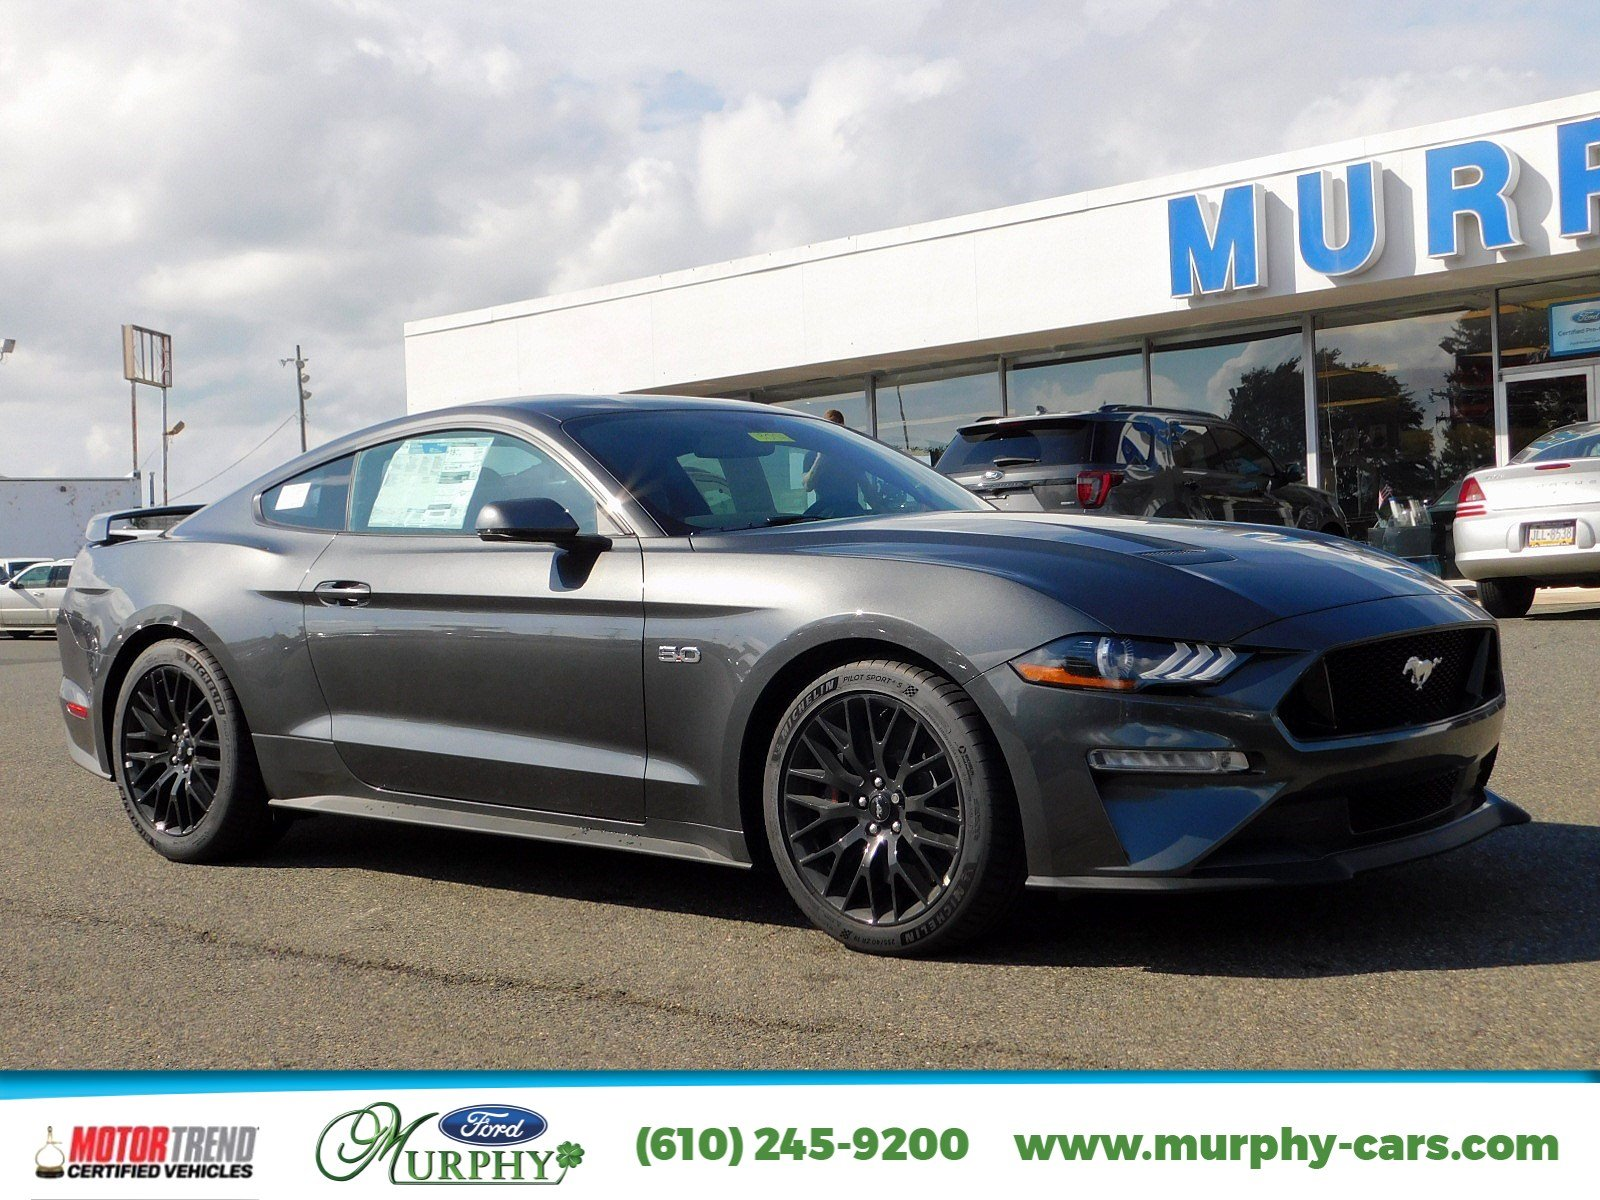 New 2019 Ford Mustang GT 2dr Car in Delaware County PA